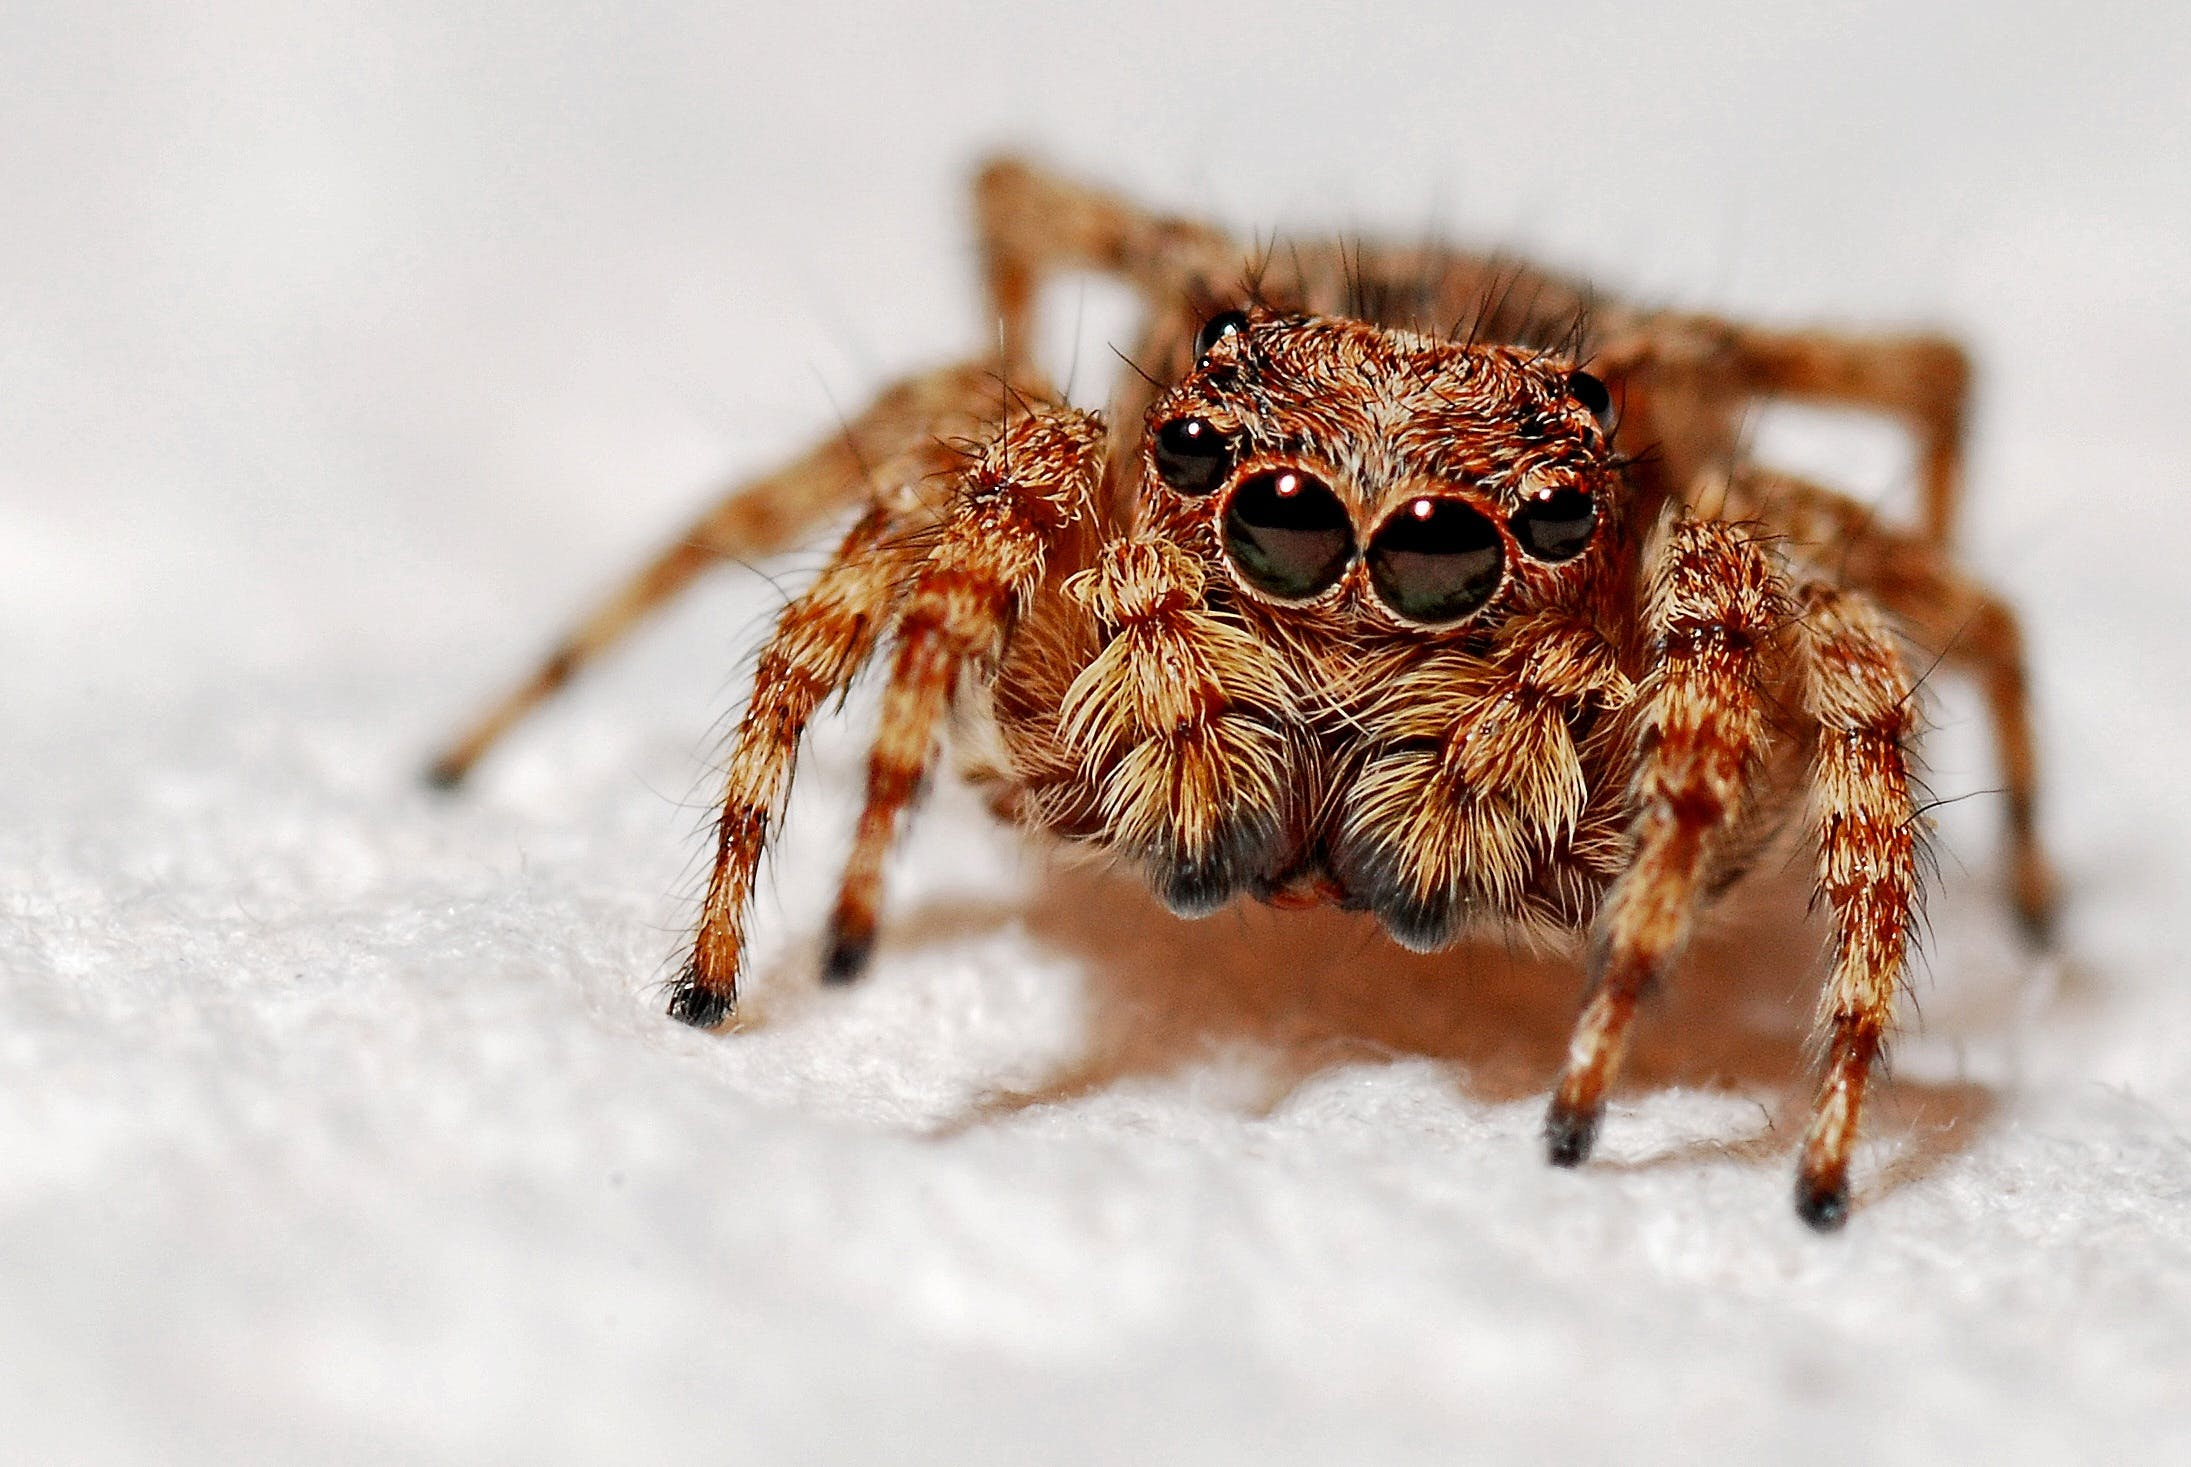 Selective Focus Photography of Brown and Black Jumping Spider on White Textile